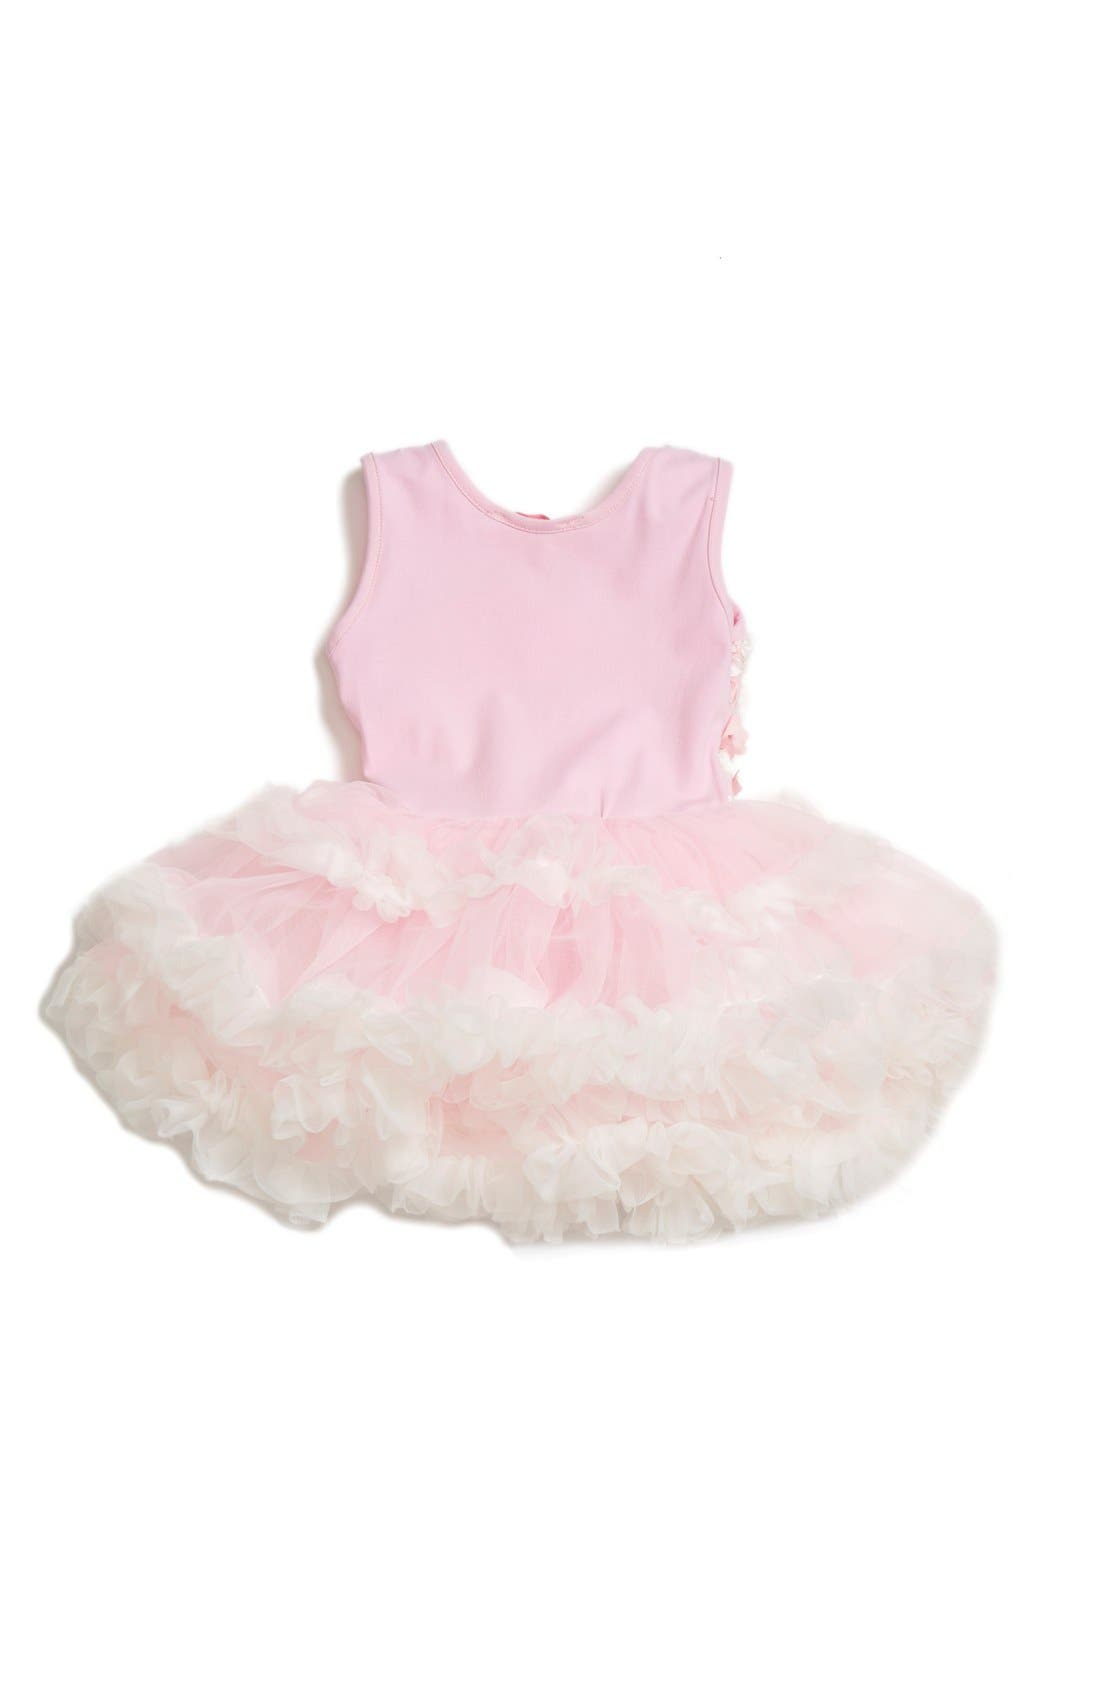 4003150db2 Kids  Dresses Apparel  T-Shirts